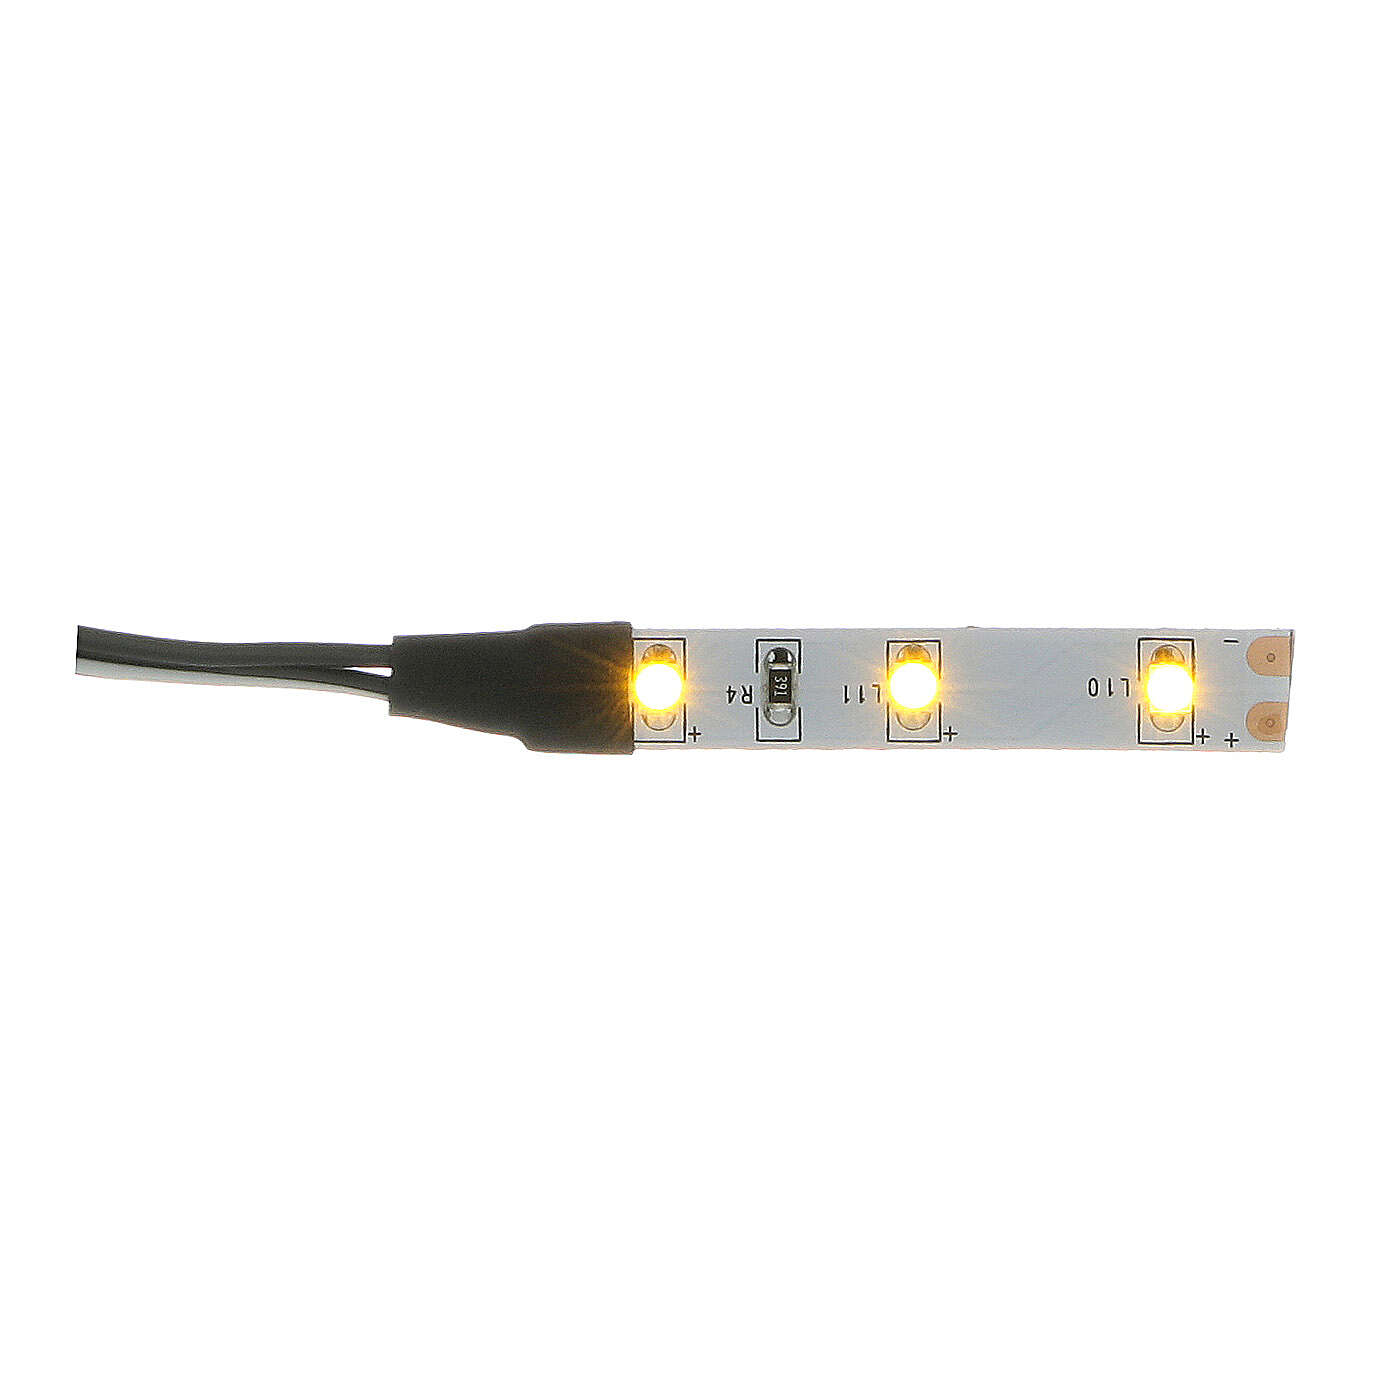 LED strip with 3 lights 0,8x4cm, yellow for Frisalight 4